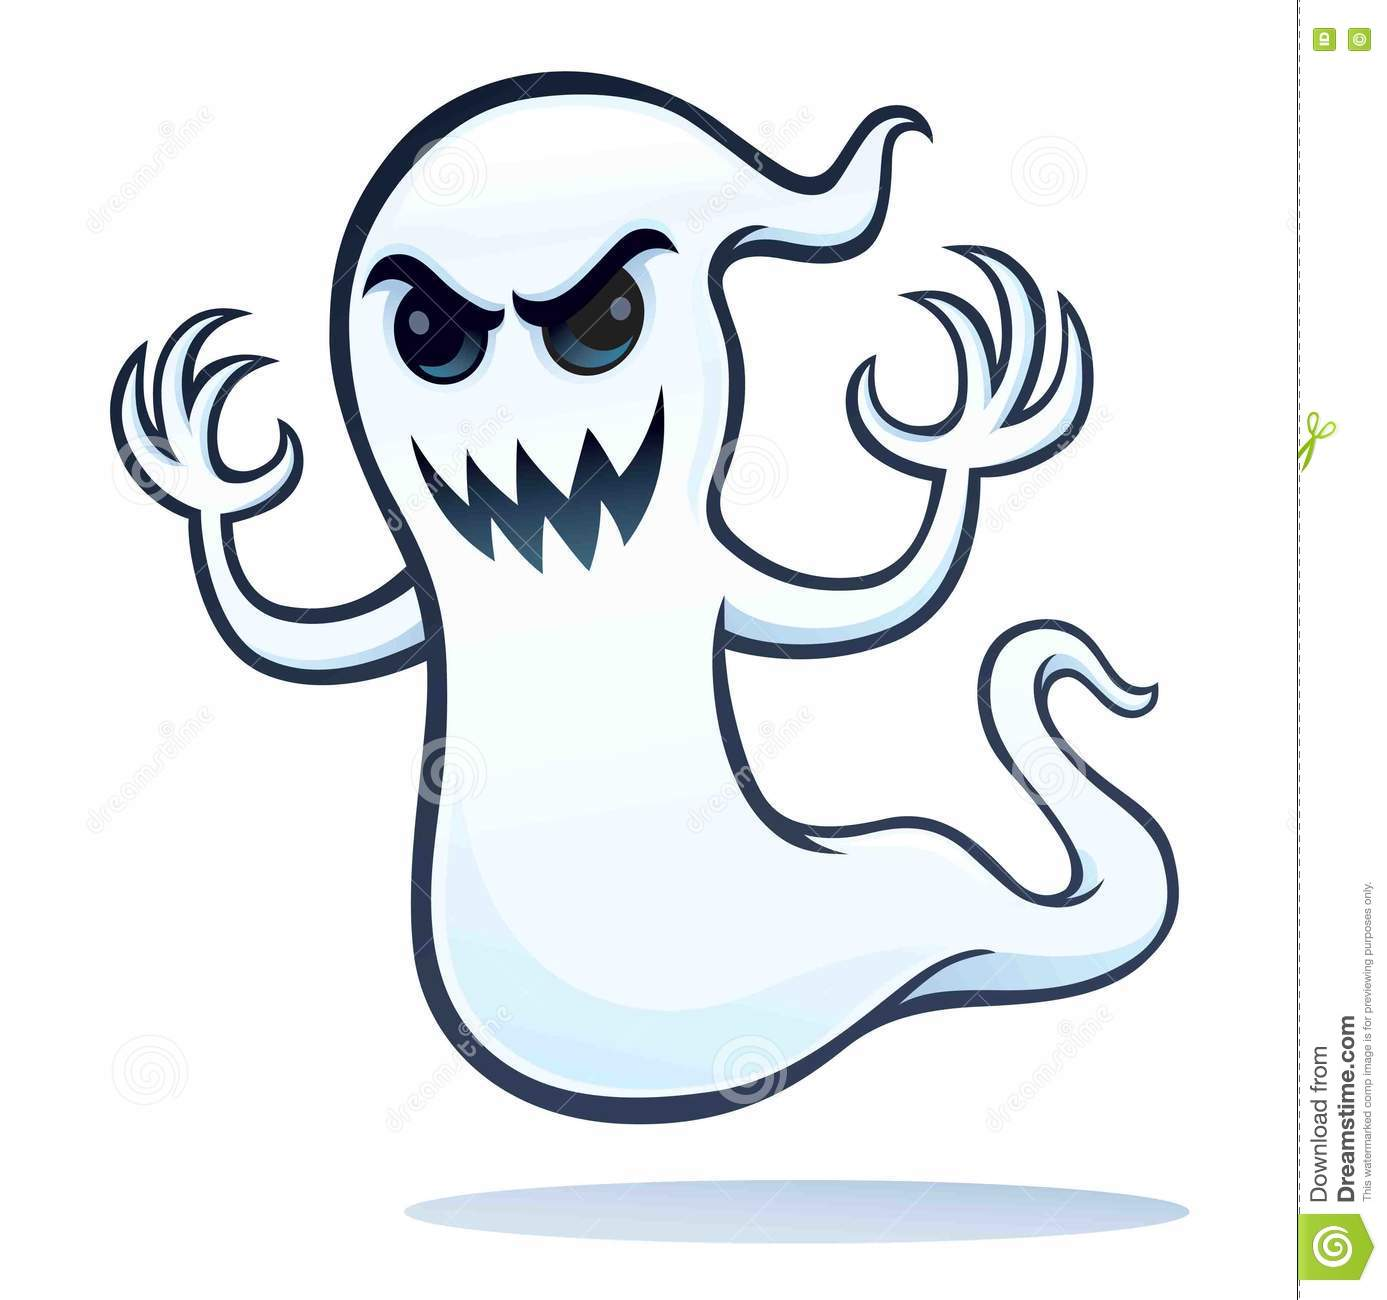 Spooky angry ghost stock image image of macabre floating 75691055 cartoon of a spooky and angry looking ghost character that is flying with arms up publicscrutiny Images